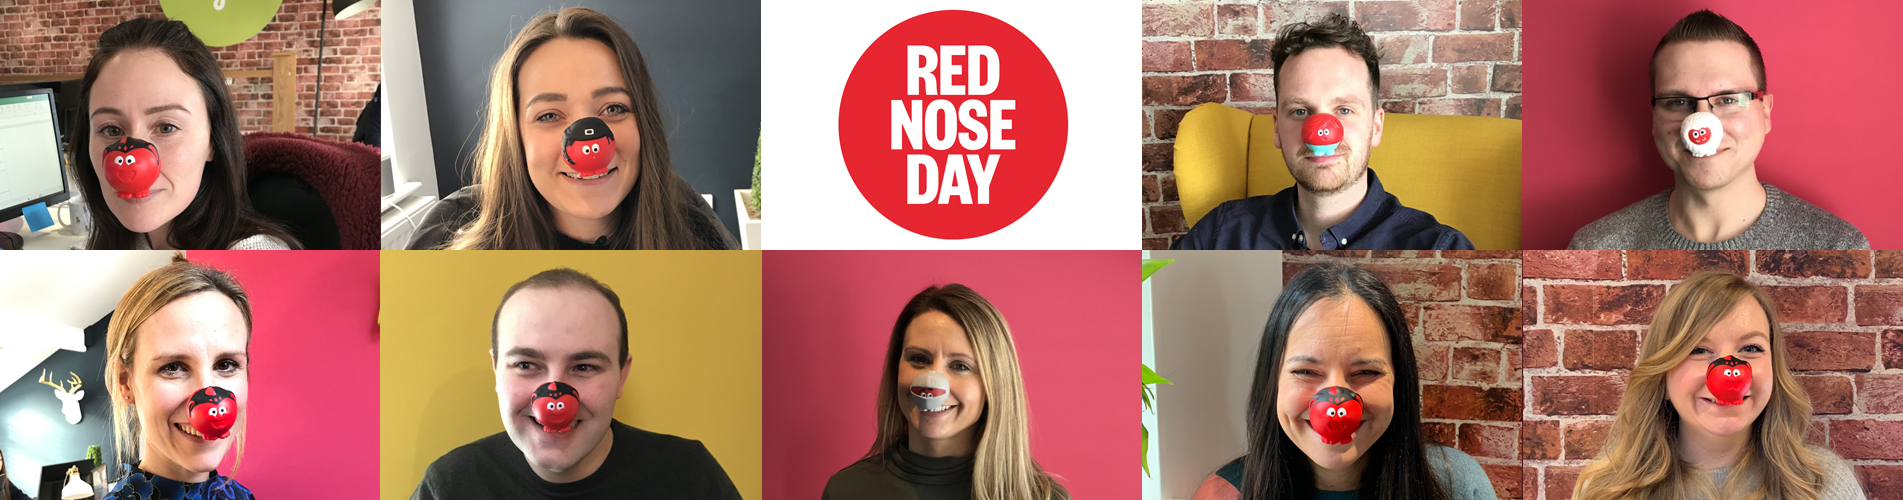 Red nose day at Entyce